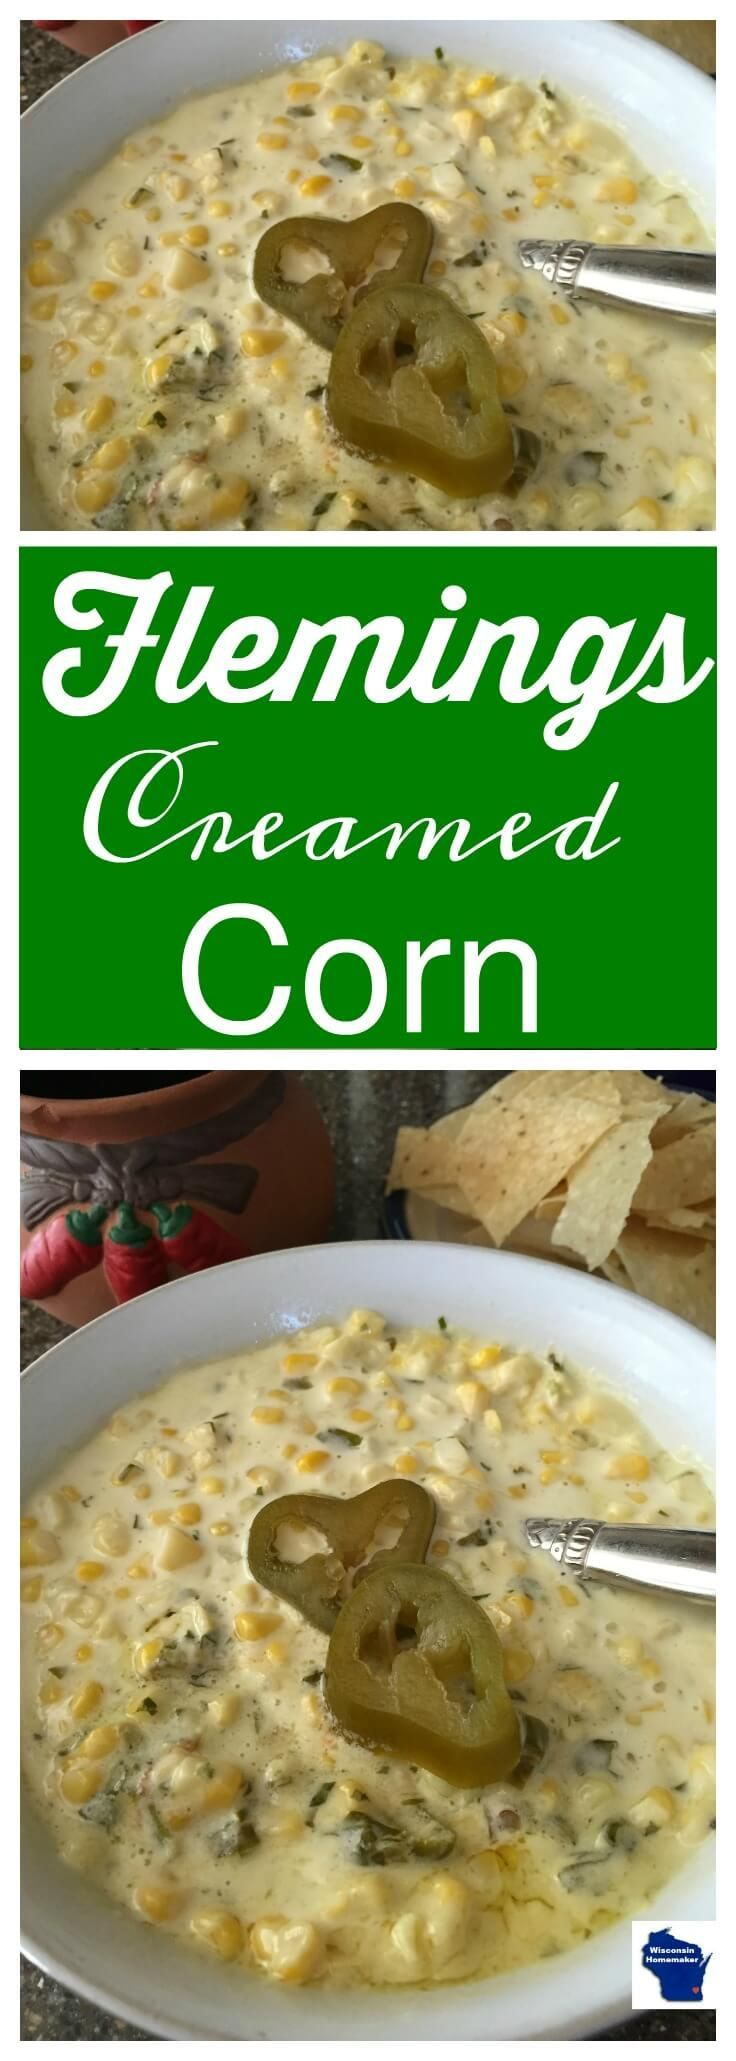 Flemings Creamed Corn found on WisconsinHomemaker.com - This is my rendition of a delicious Fleming's Steakhouse side dish and named appropriately: Flemings Creamed Corn. It's bold and spicy but it's not too hot. via @wihomemaker